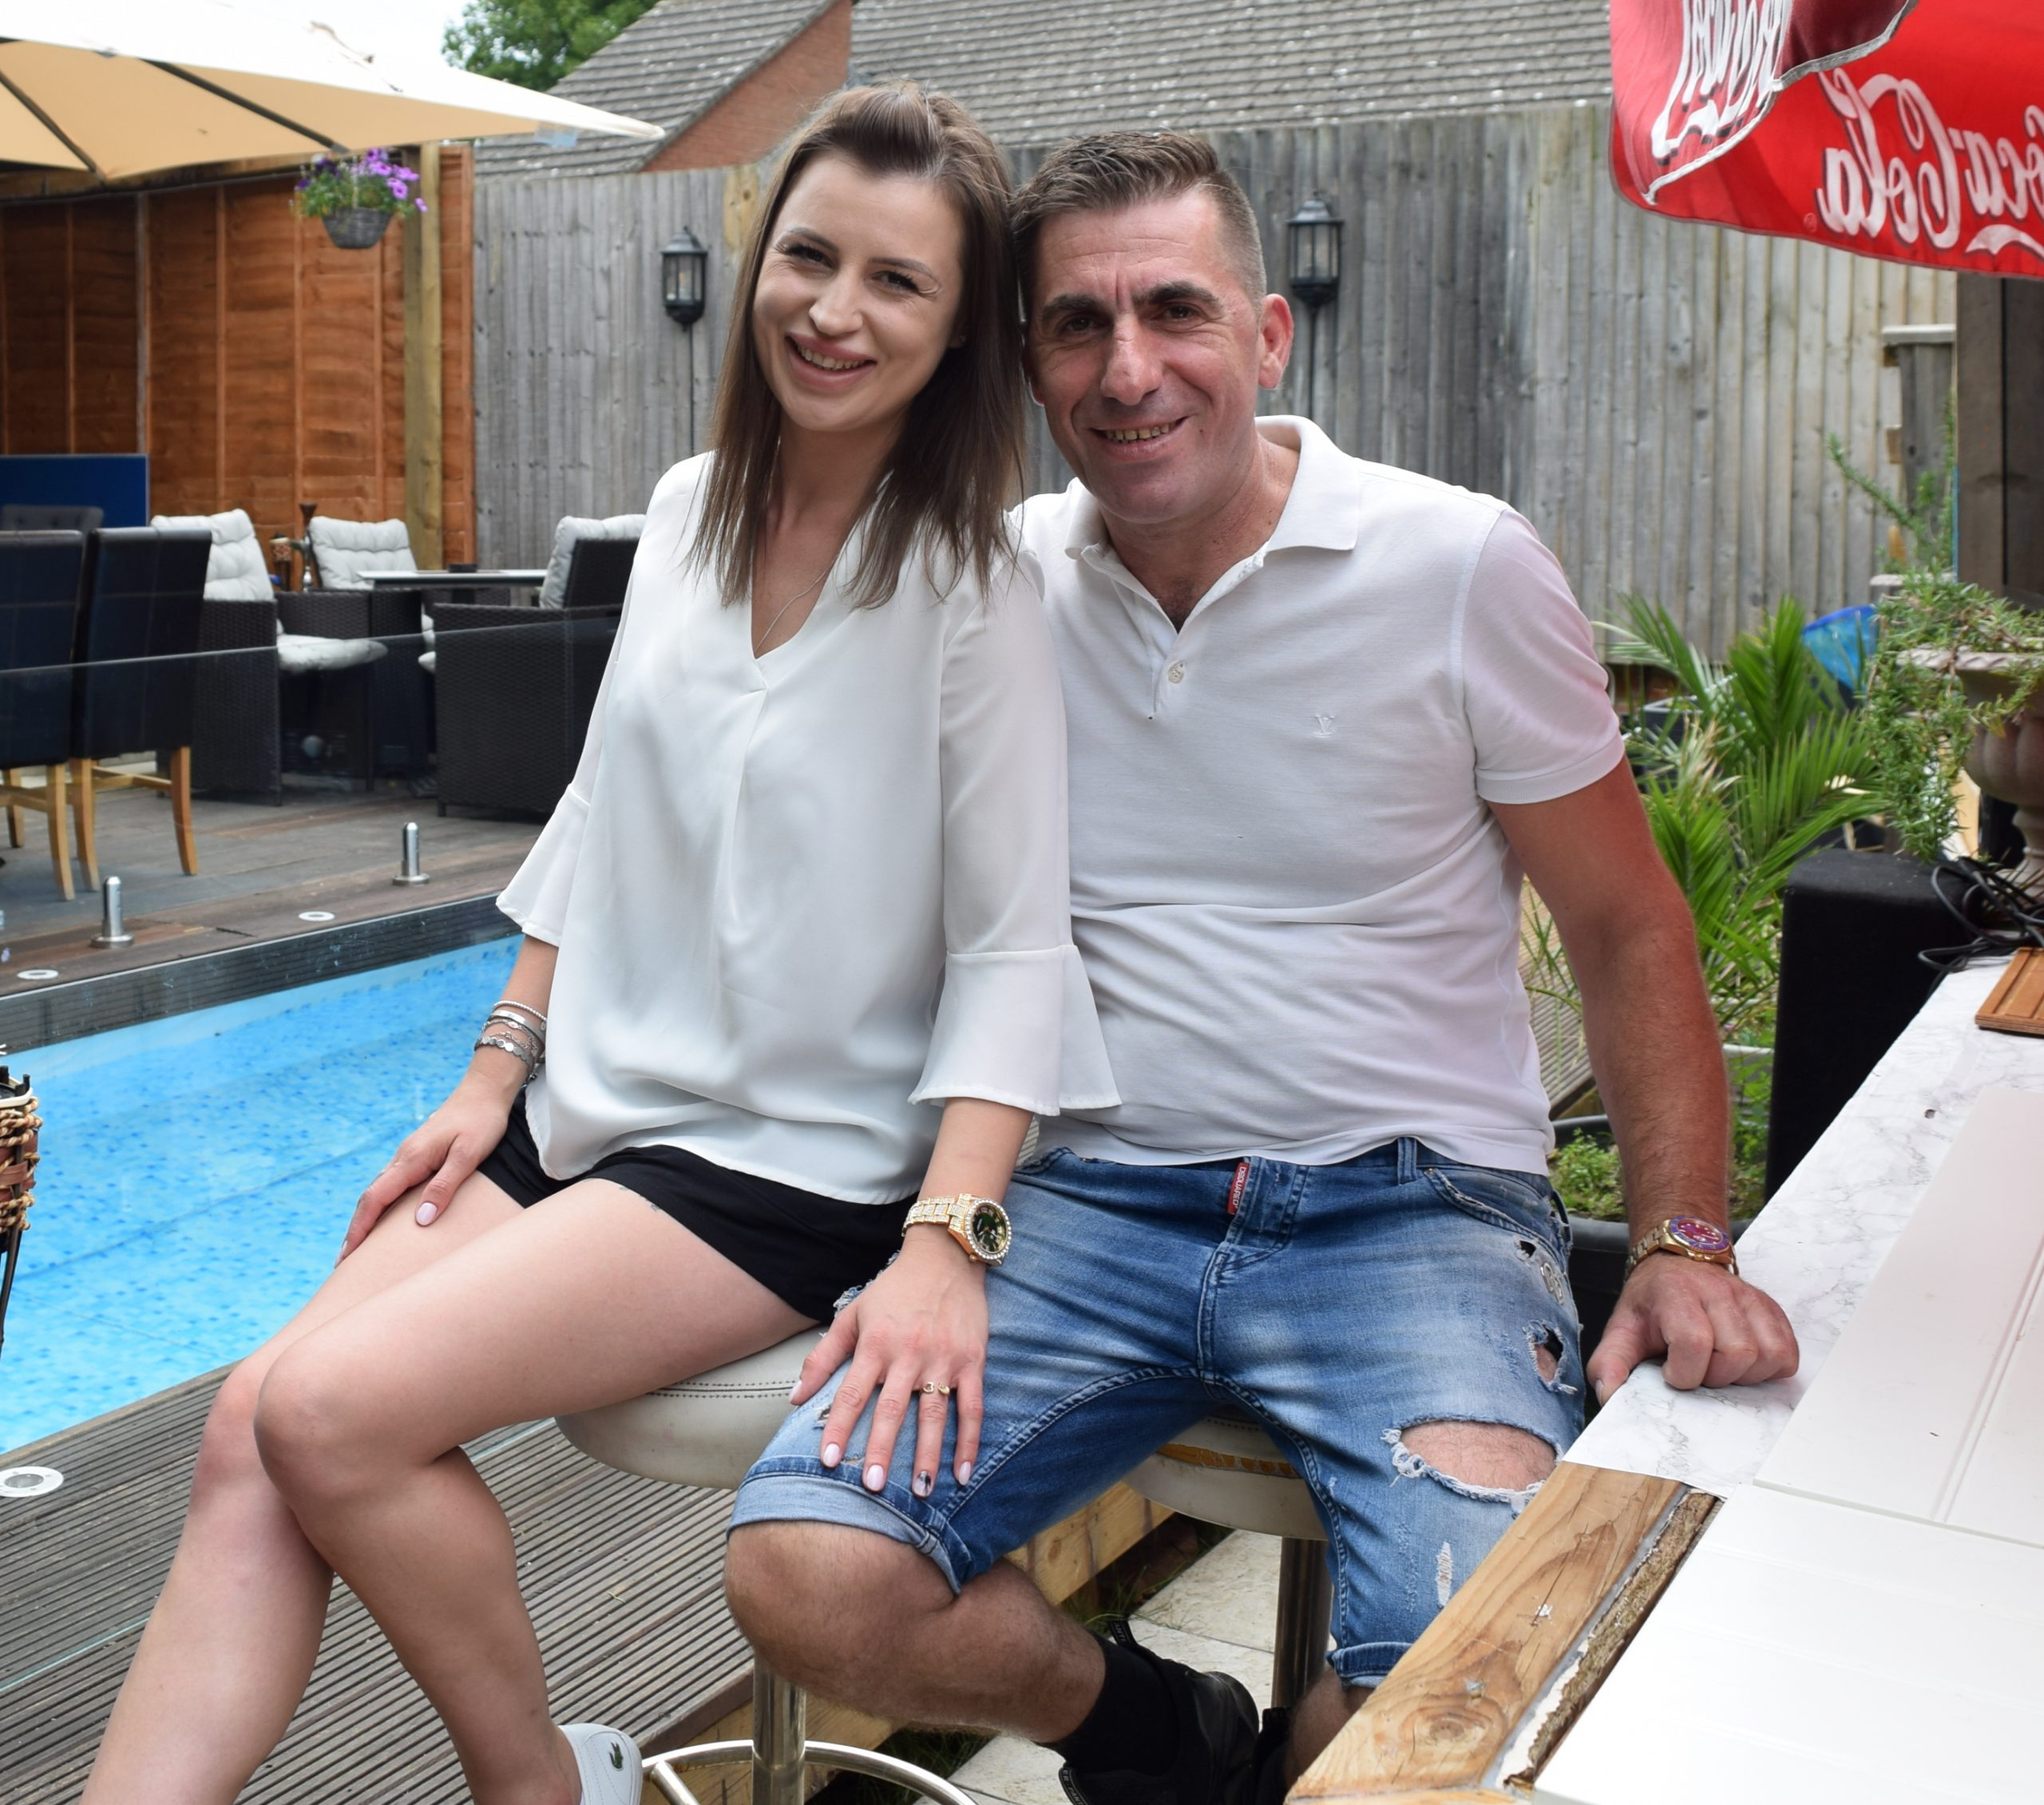 An Albanian pub landlord turns dreary beer garden into a Spanish resort  with hot tub, terrace and pool costing just £100 off Gumtree - UK (British)  Albanians Network